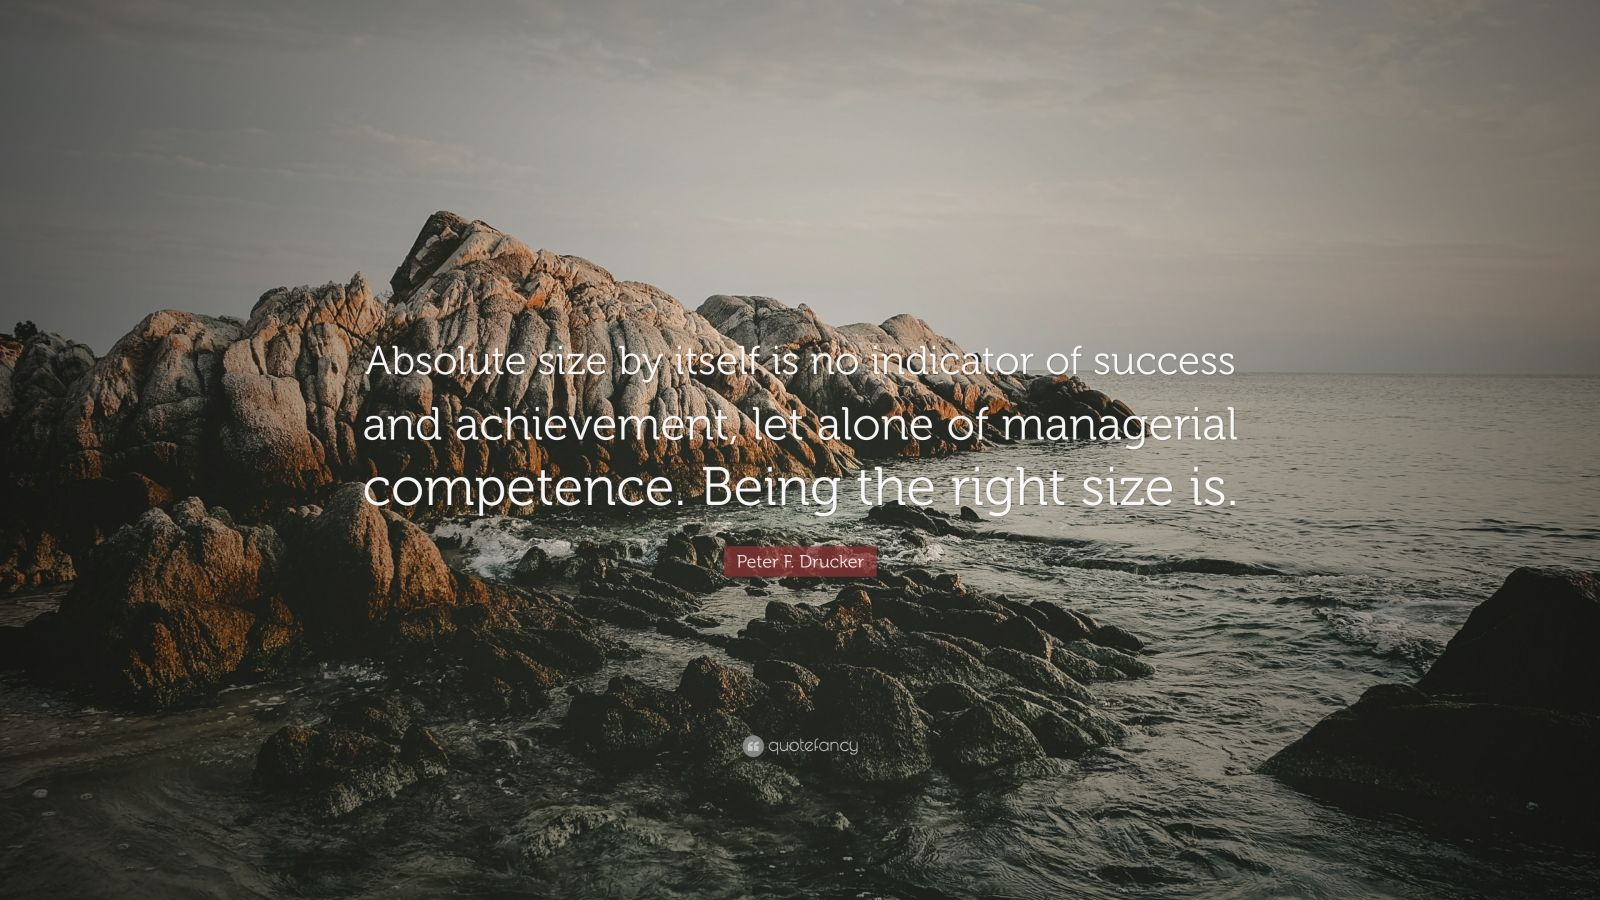 """Peter F. Drucker Quote: """"Absolute size by itself is no indicator of success and achievement, let alone of managerial competence. Being the right size is."""""""